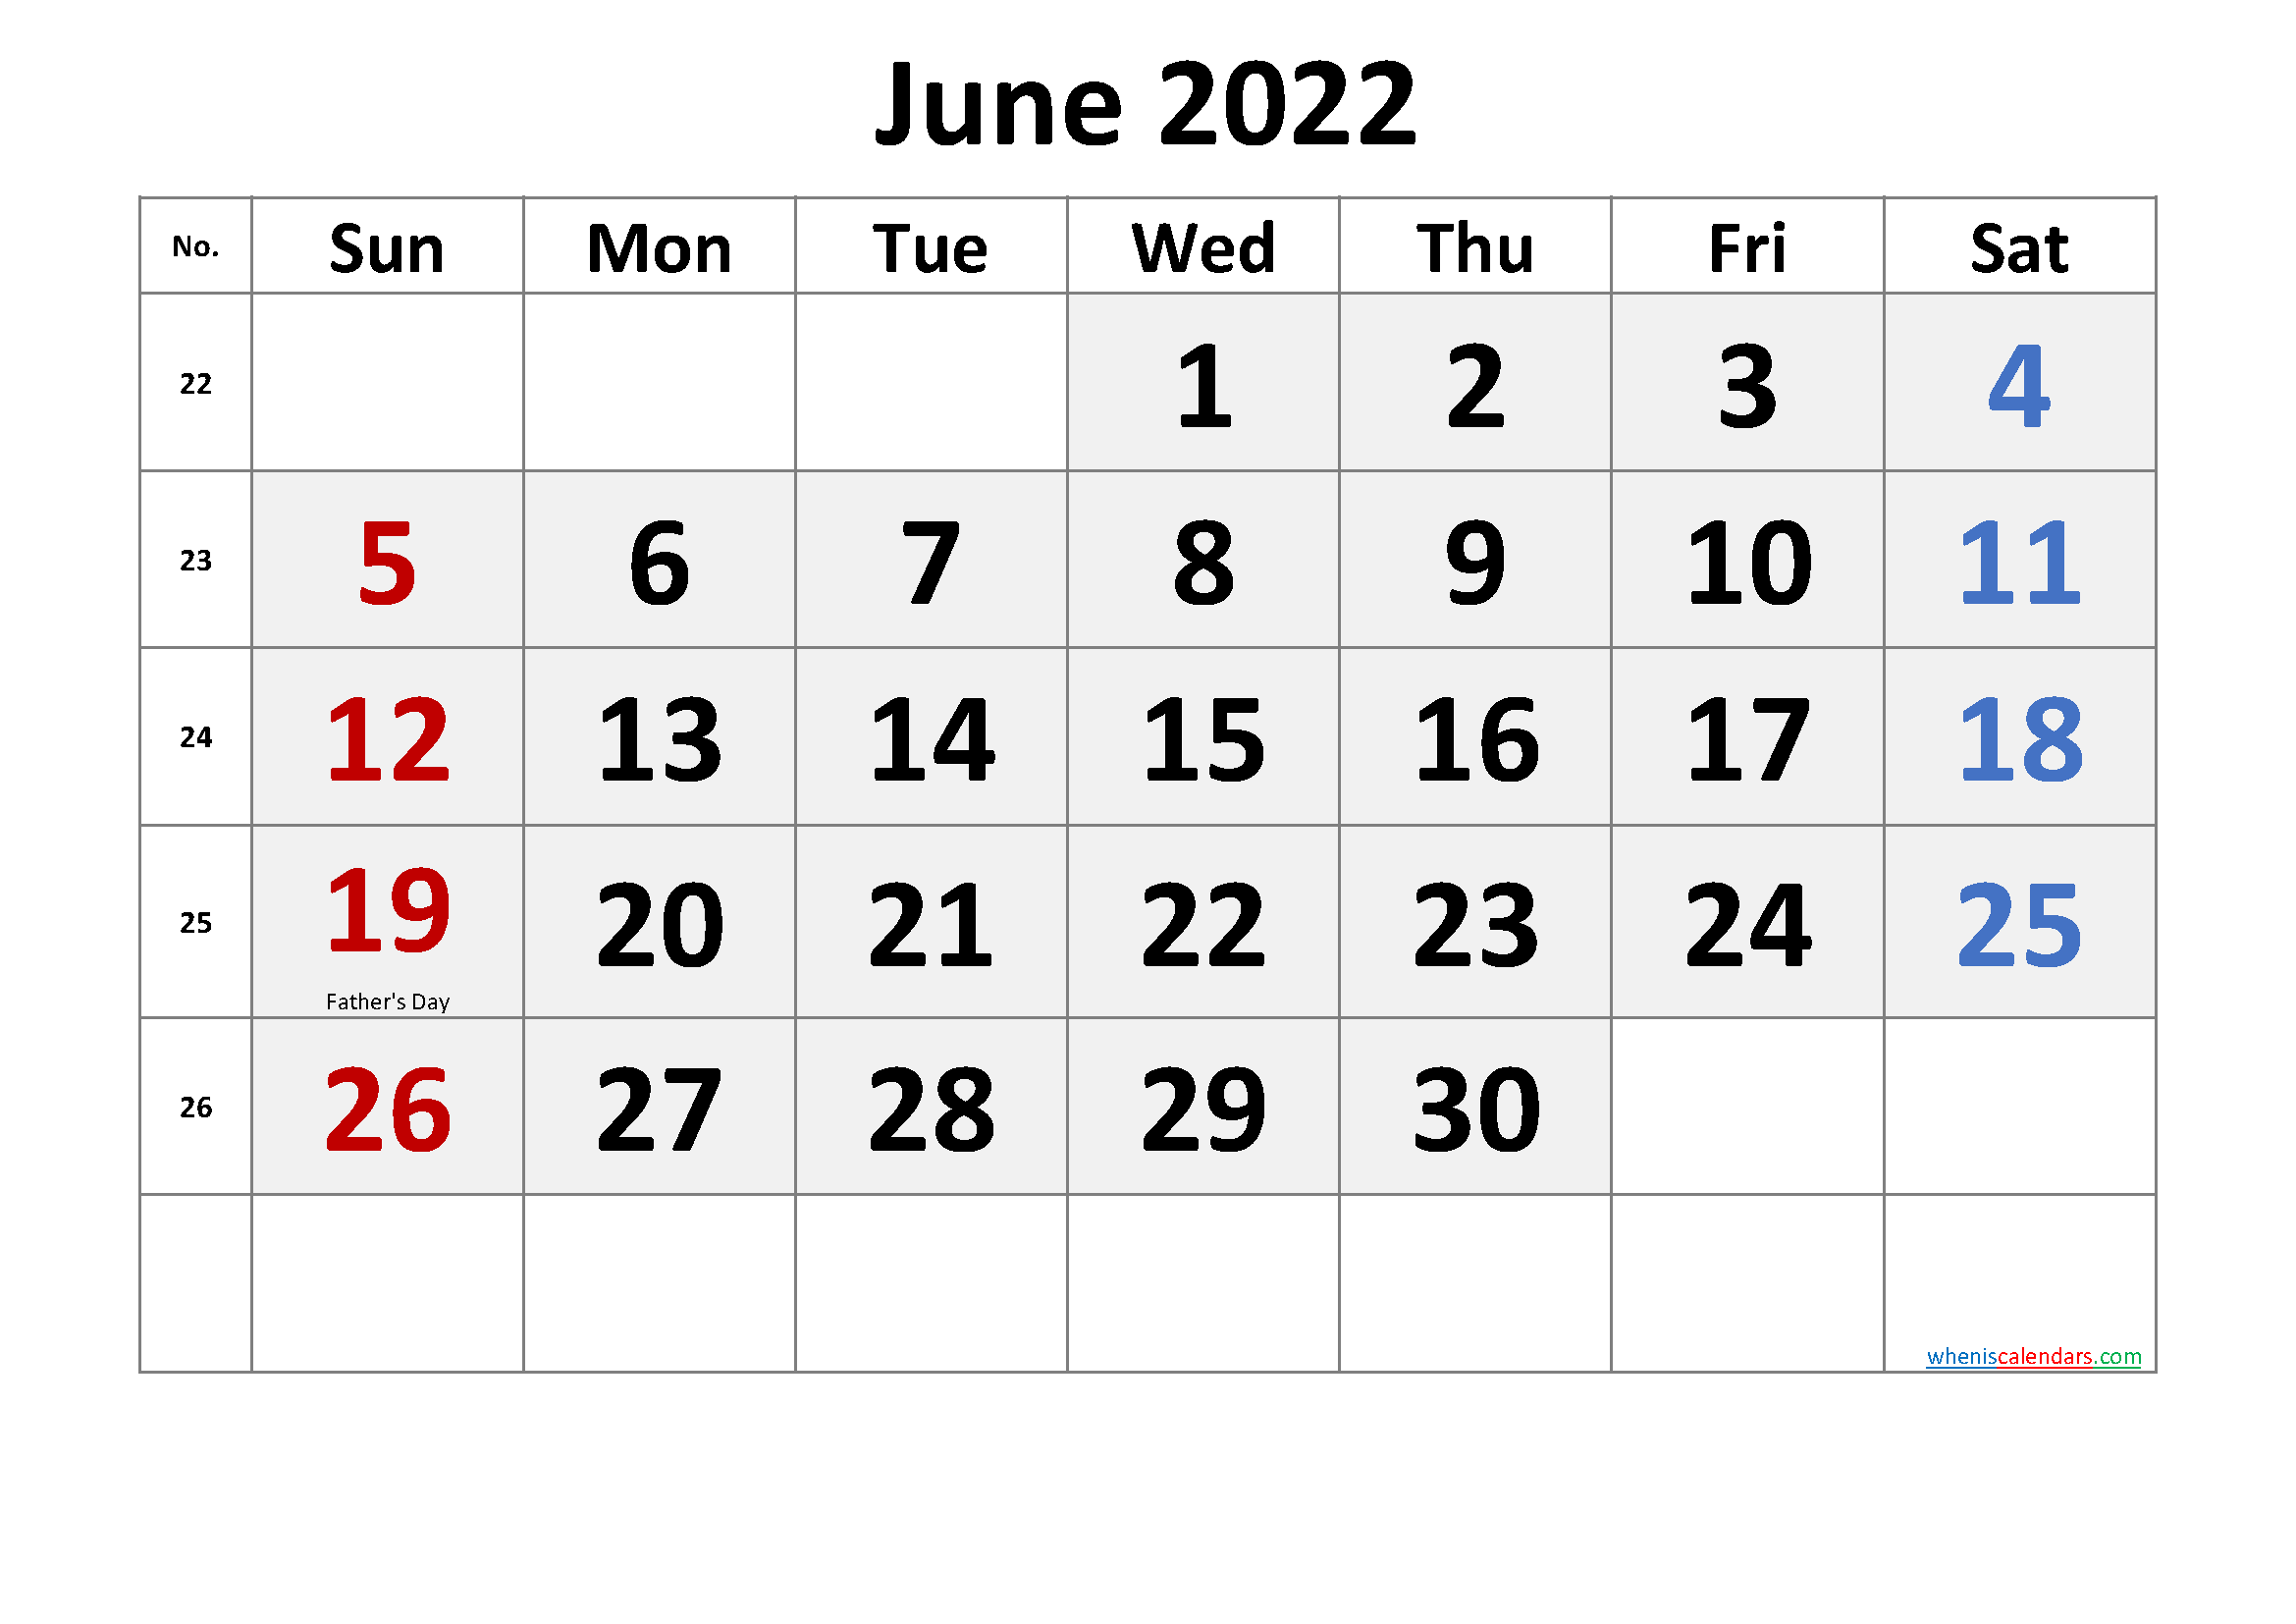 June 2022 Calendar with Holidays Printable